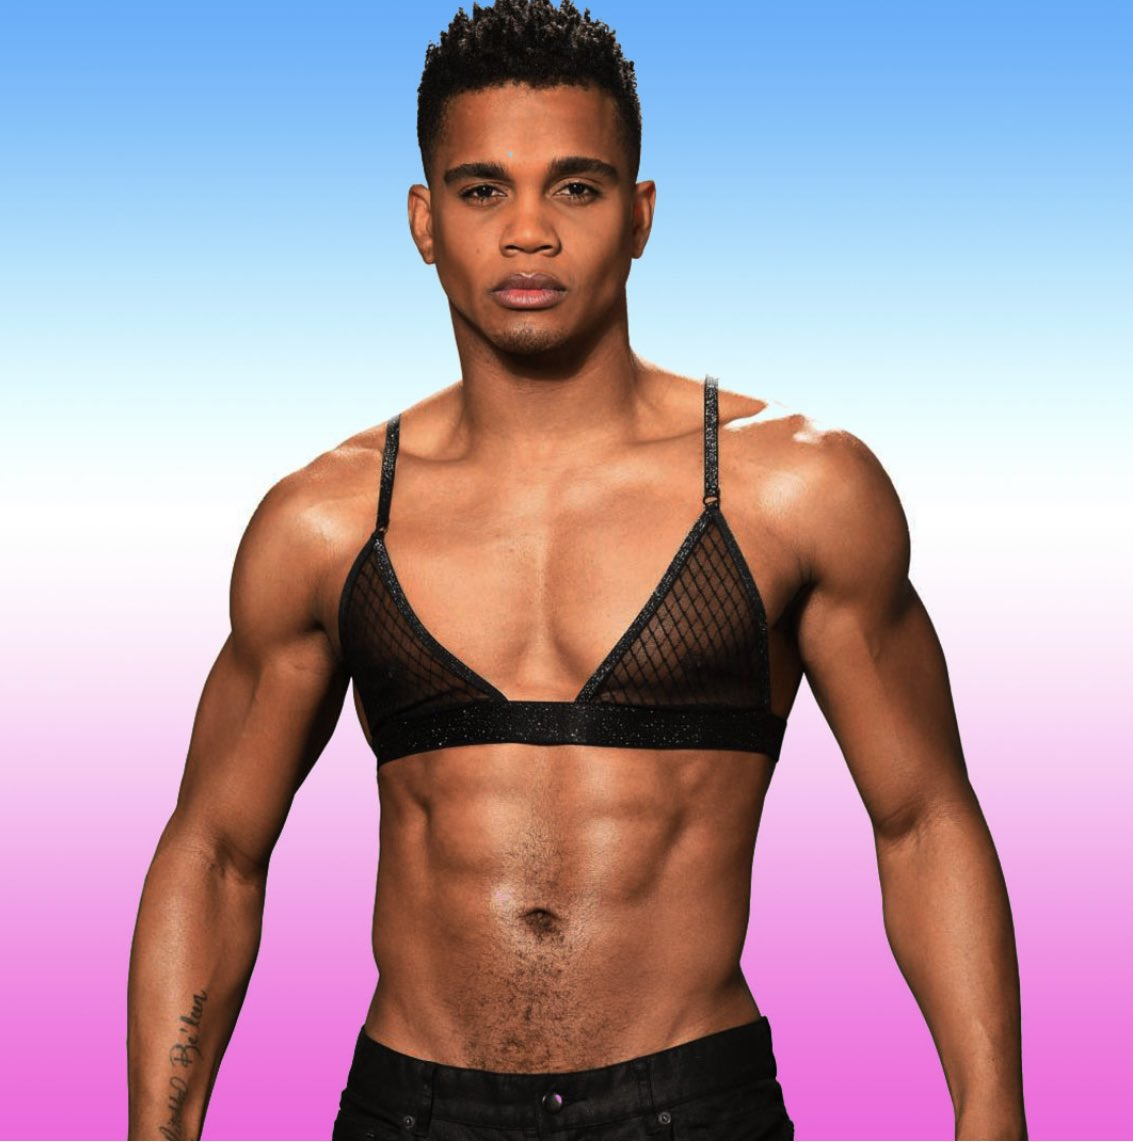 Men in bras! We think it's kinda hot....but what do you think?